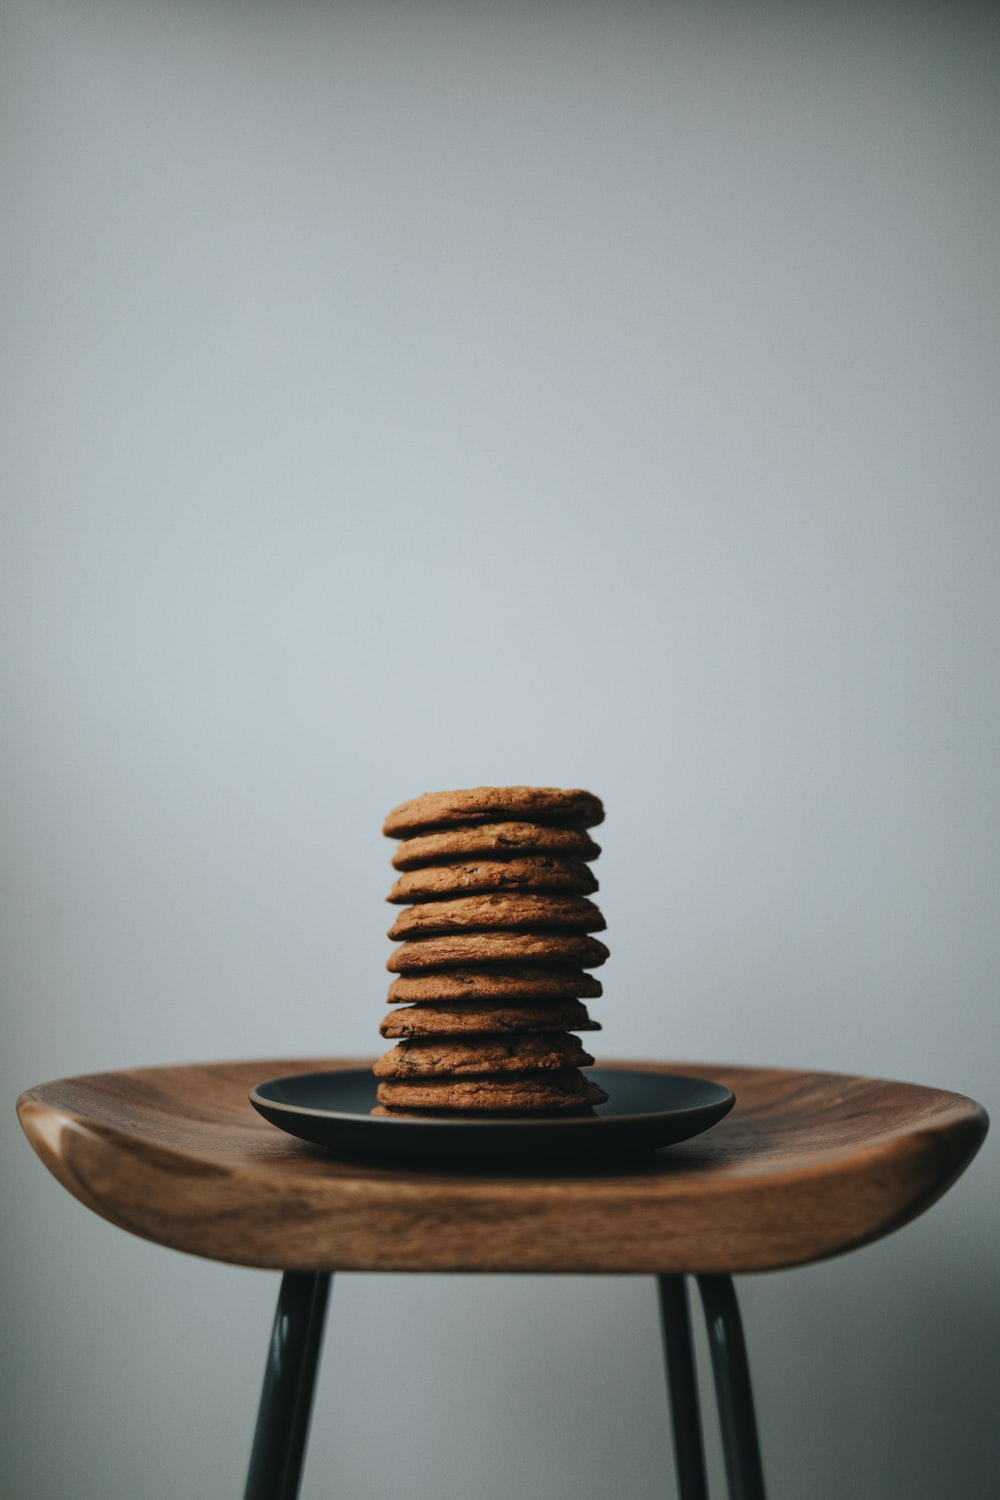 stack of brown cookies on black ceramic plate